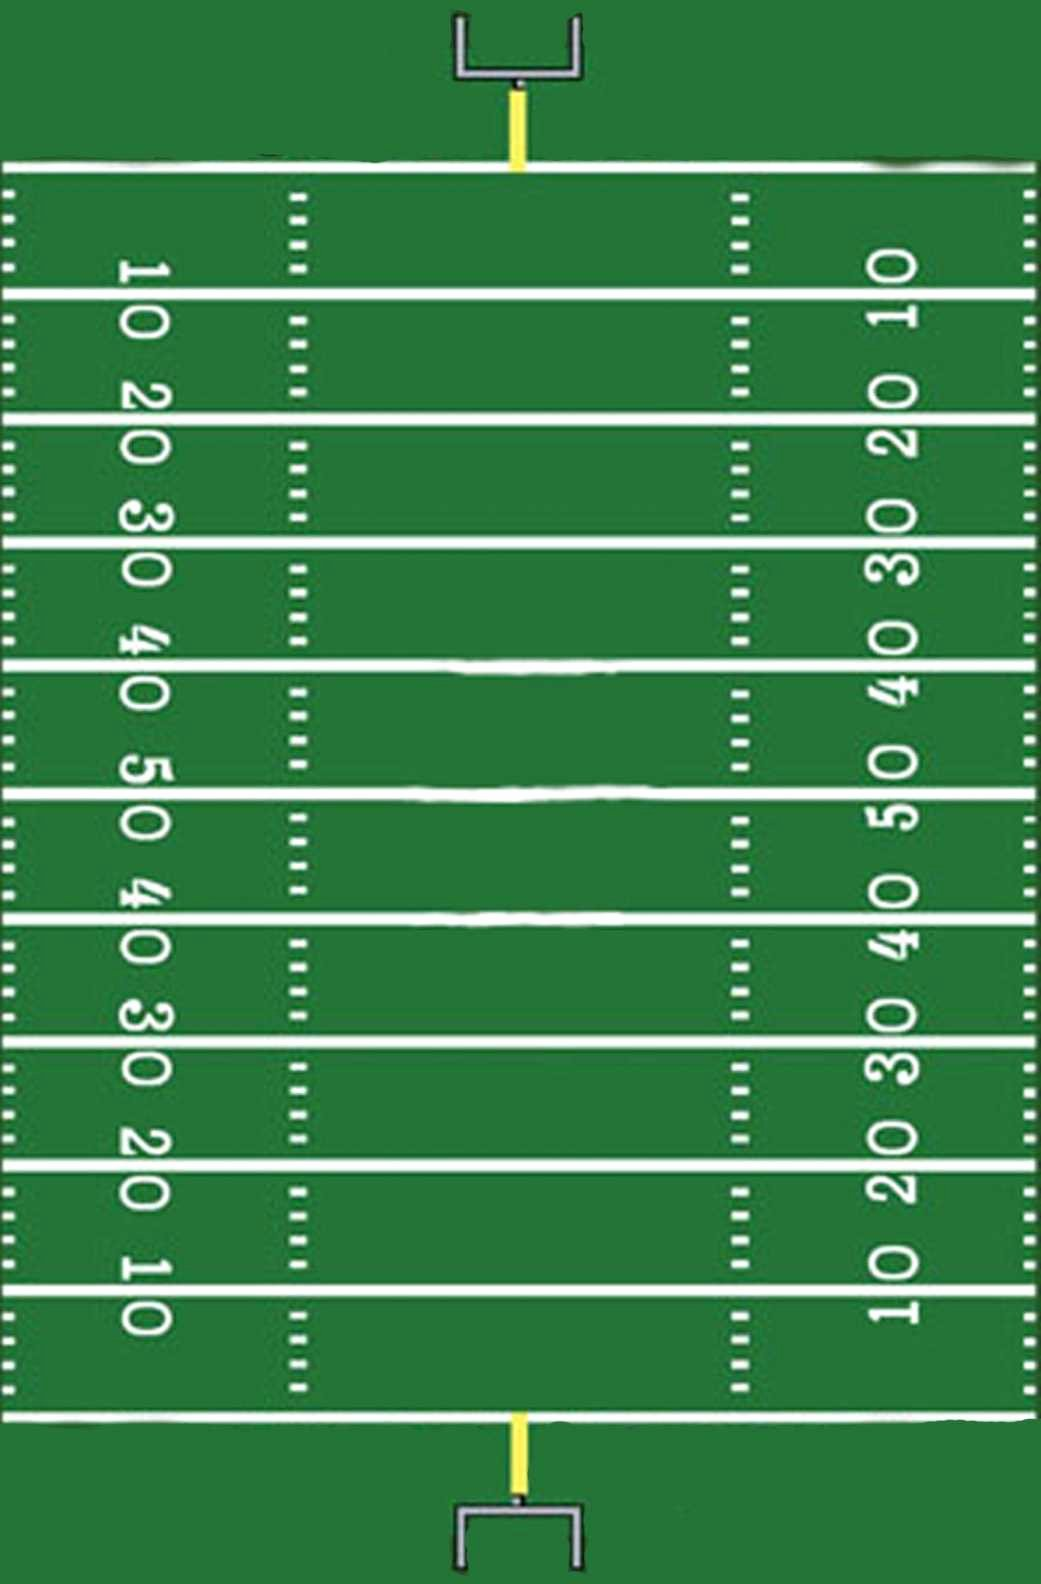 Football Offensive formations Template Elegant Lovely Fensive Play Call Sheet Template